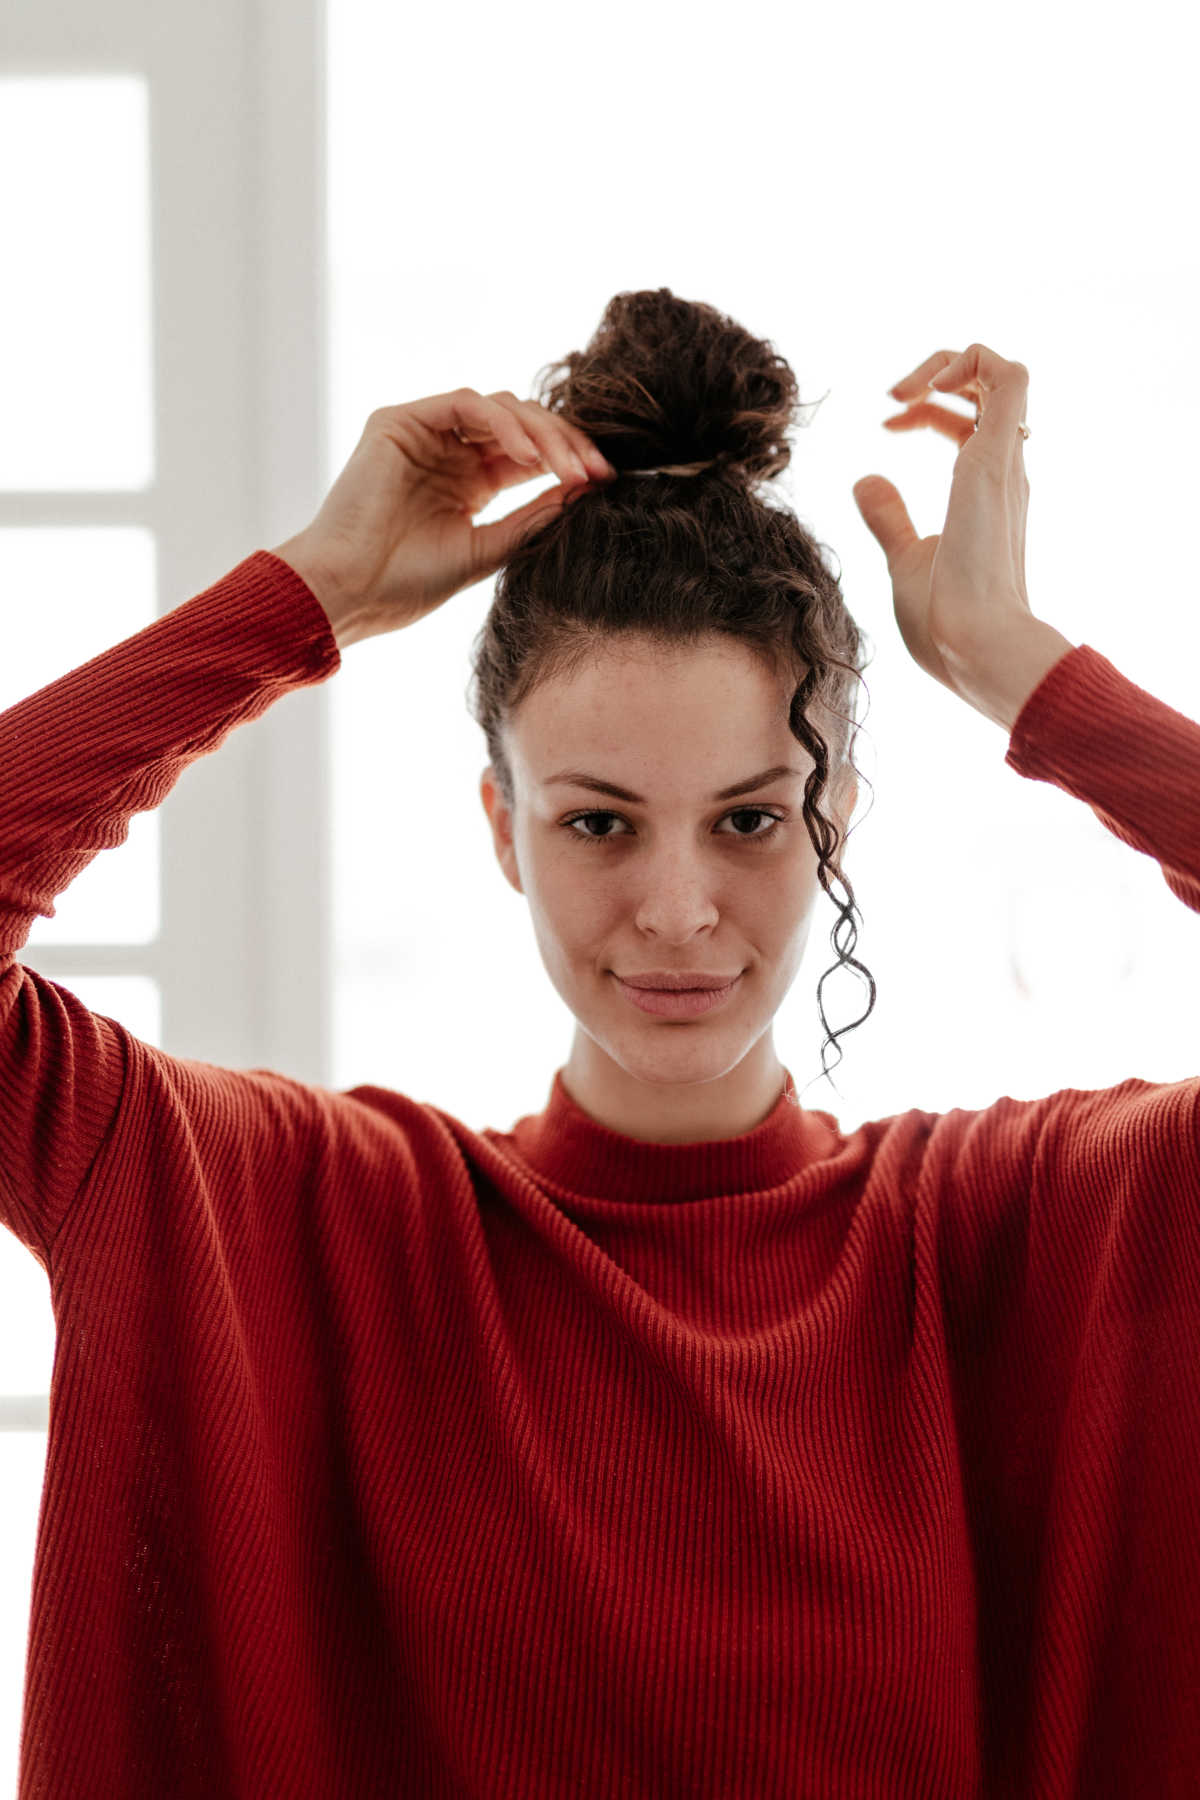 Young woman in red sweater adjusting her hair bun while looking into the camera